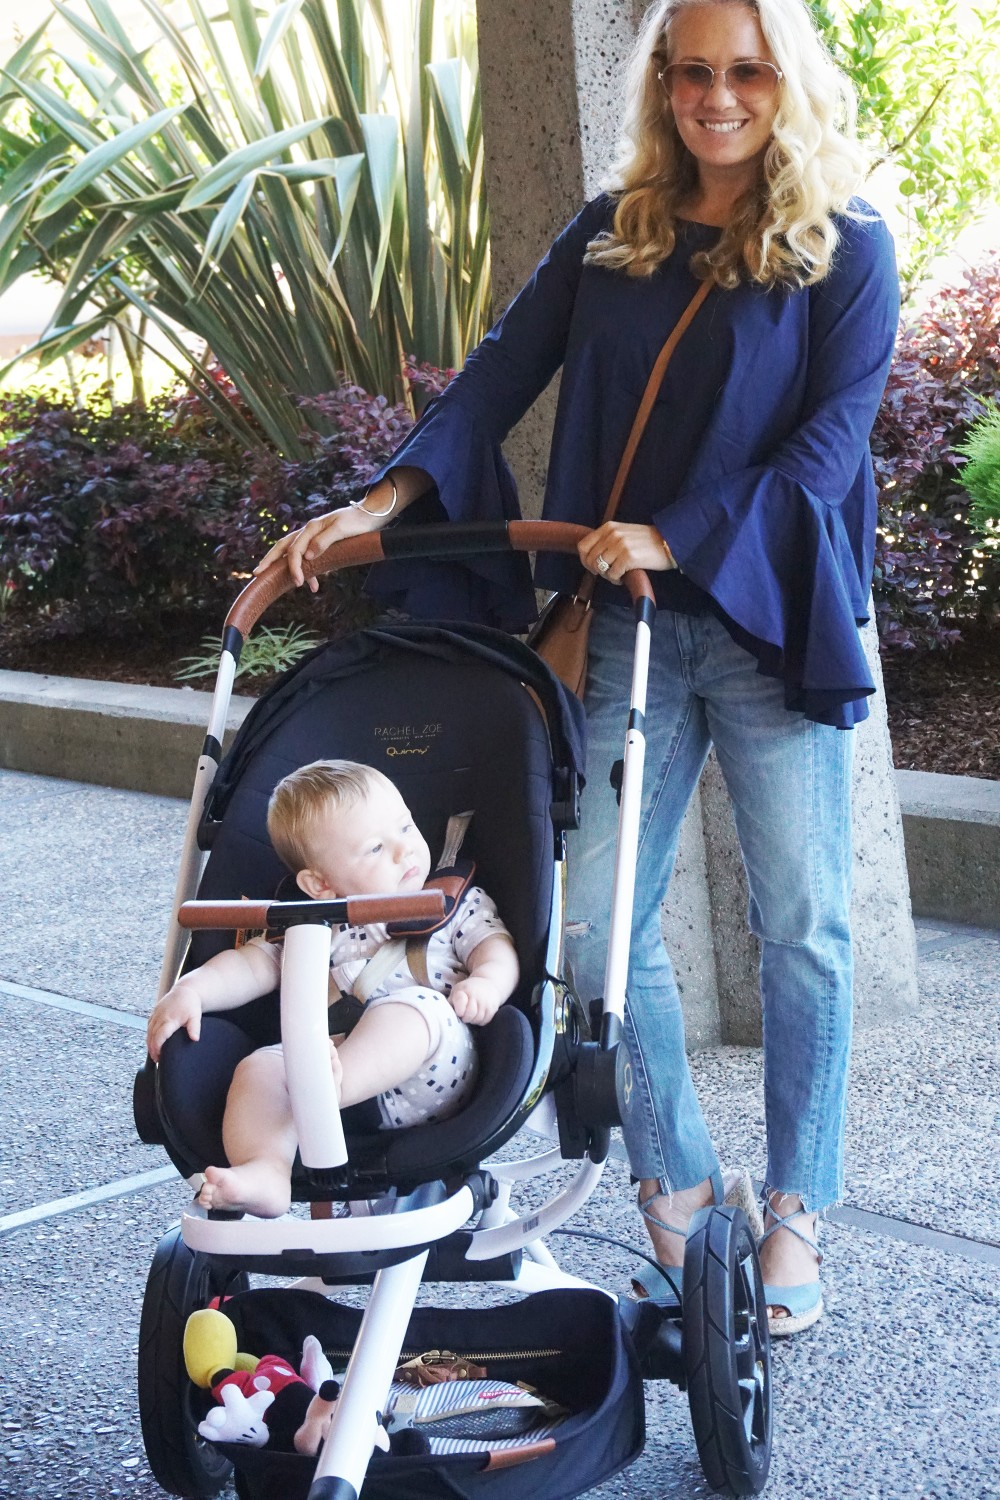 Review of Rachel Zoe x Quinny Moodd Stroller-Quinny Moodd Stroller-Modern Stroller-It Stroller for 2017-Chic Baby Stroller-Have Need Want-Baby Registry List Products-Baby Registry Must Have Item 2